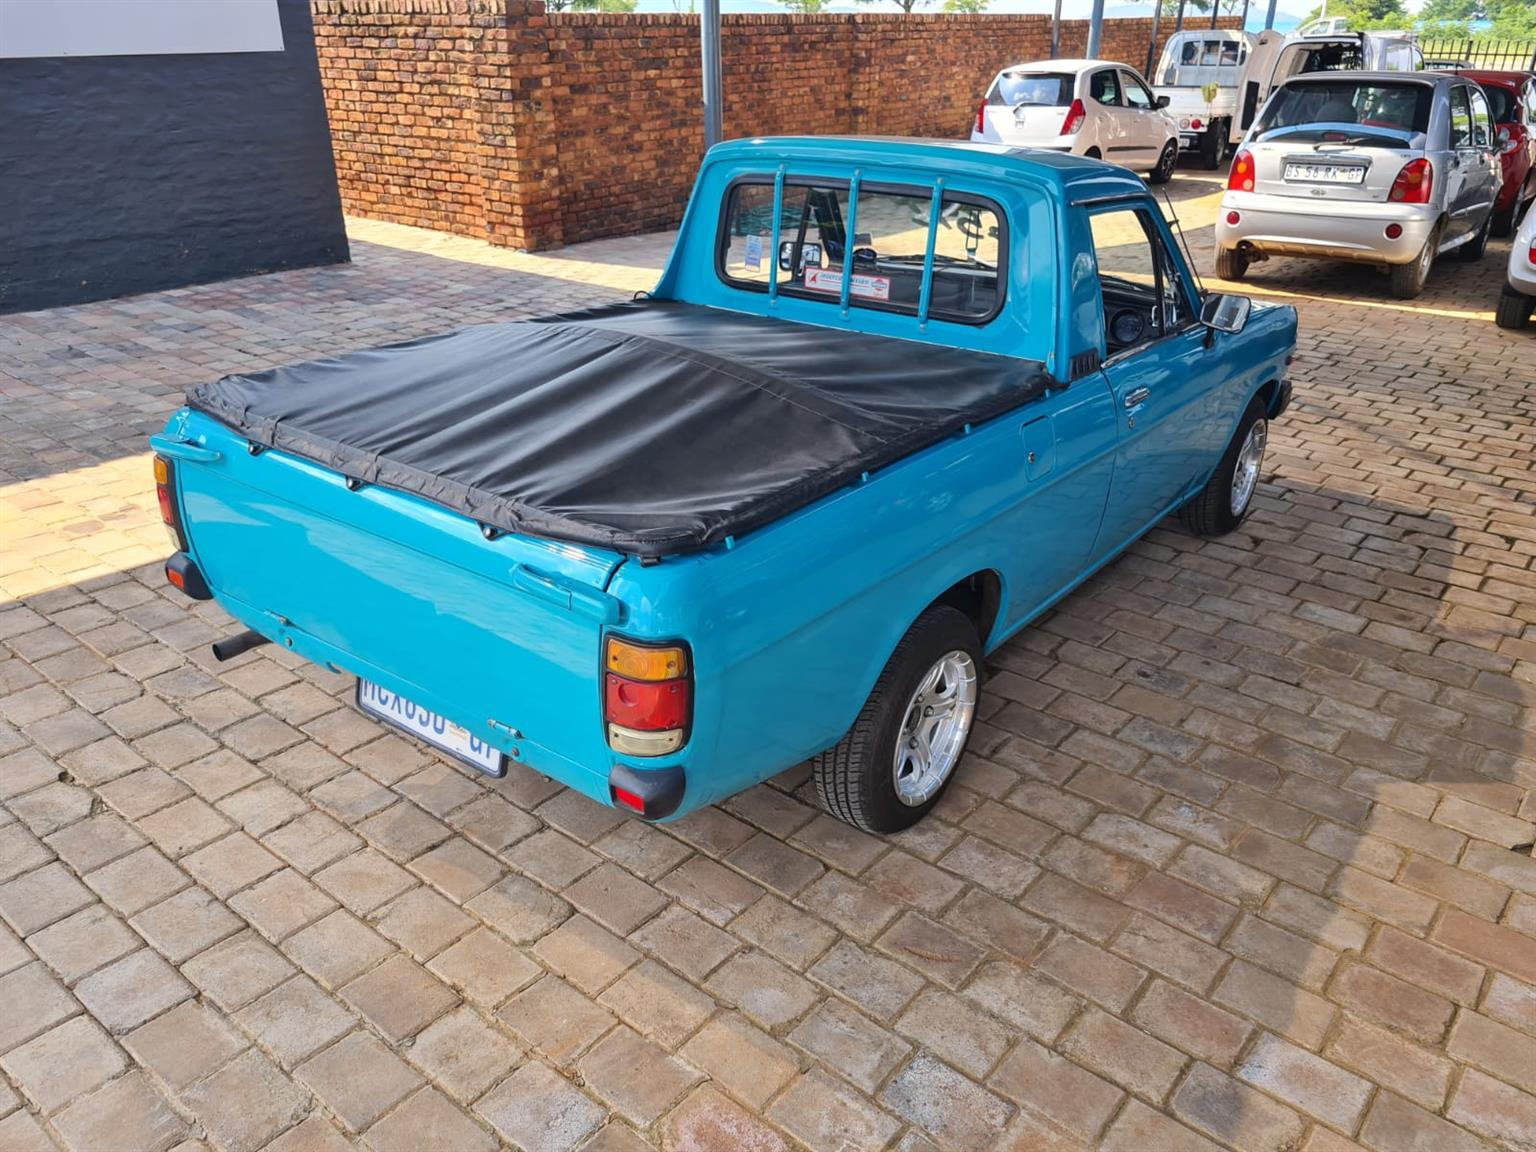 Nissan 1400 for sale or to swop for small car of same value daily driver